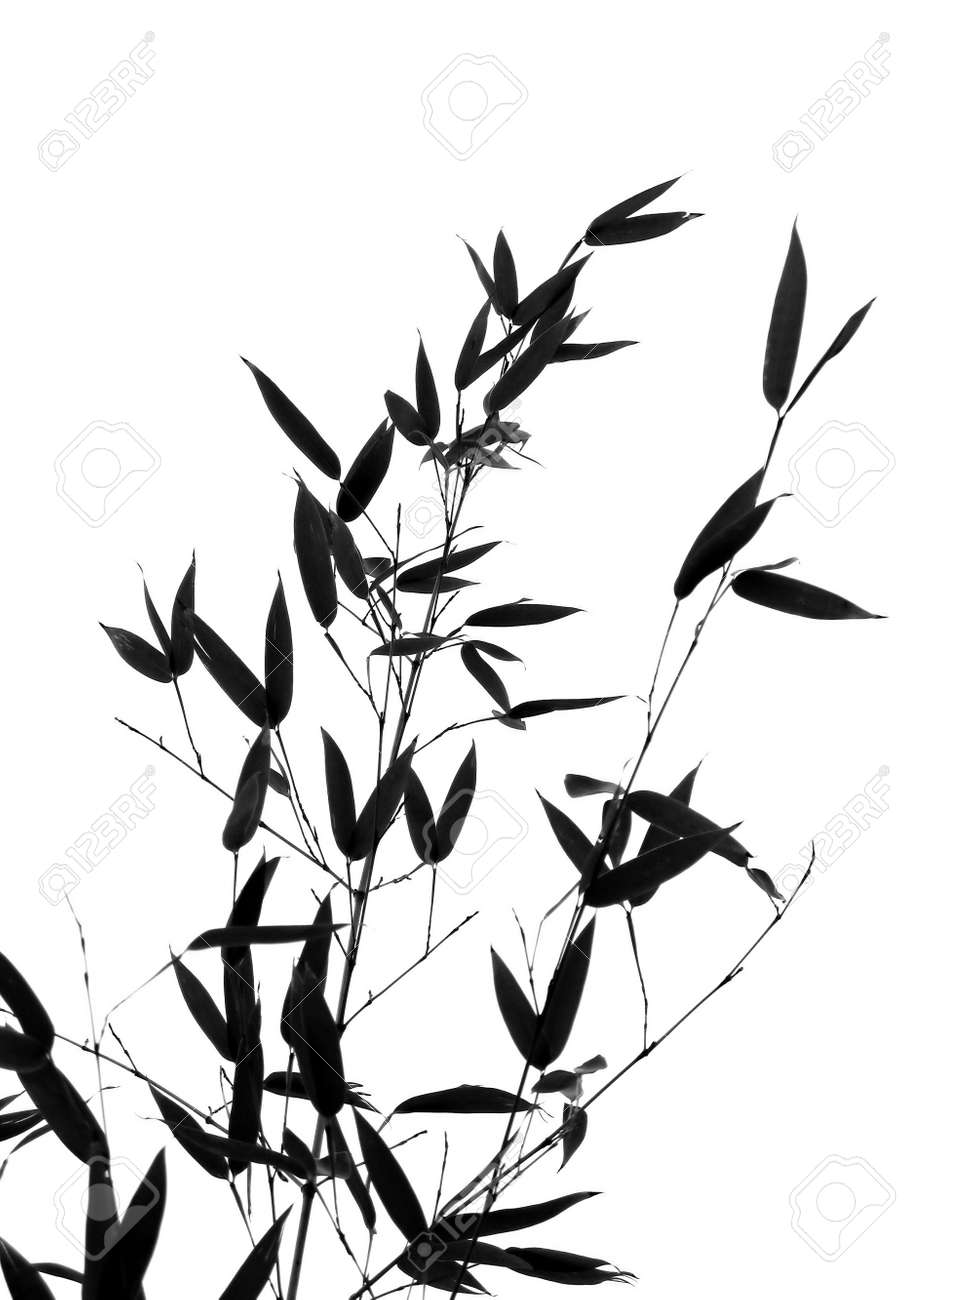 Bamboo Leaves And Branches